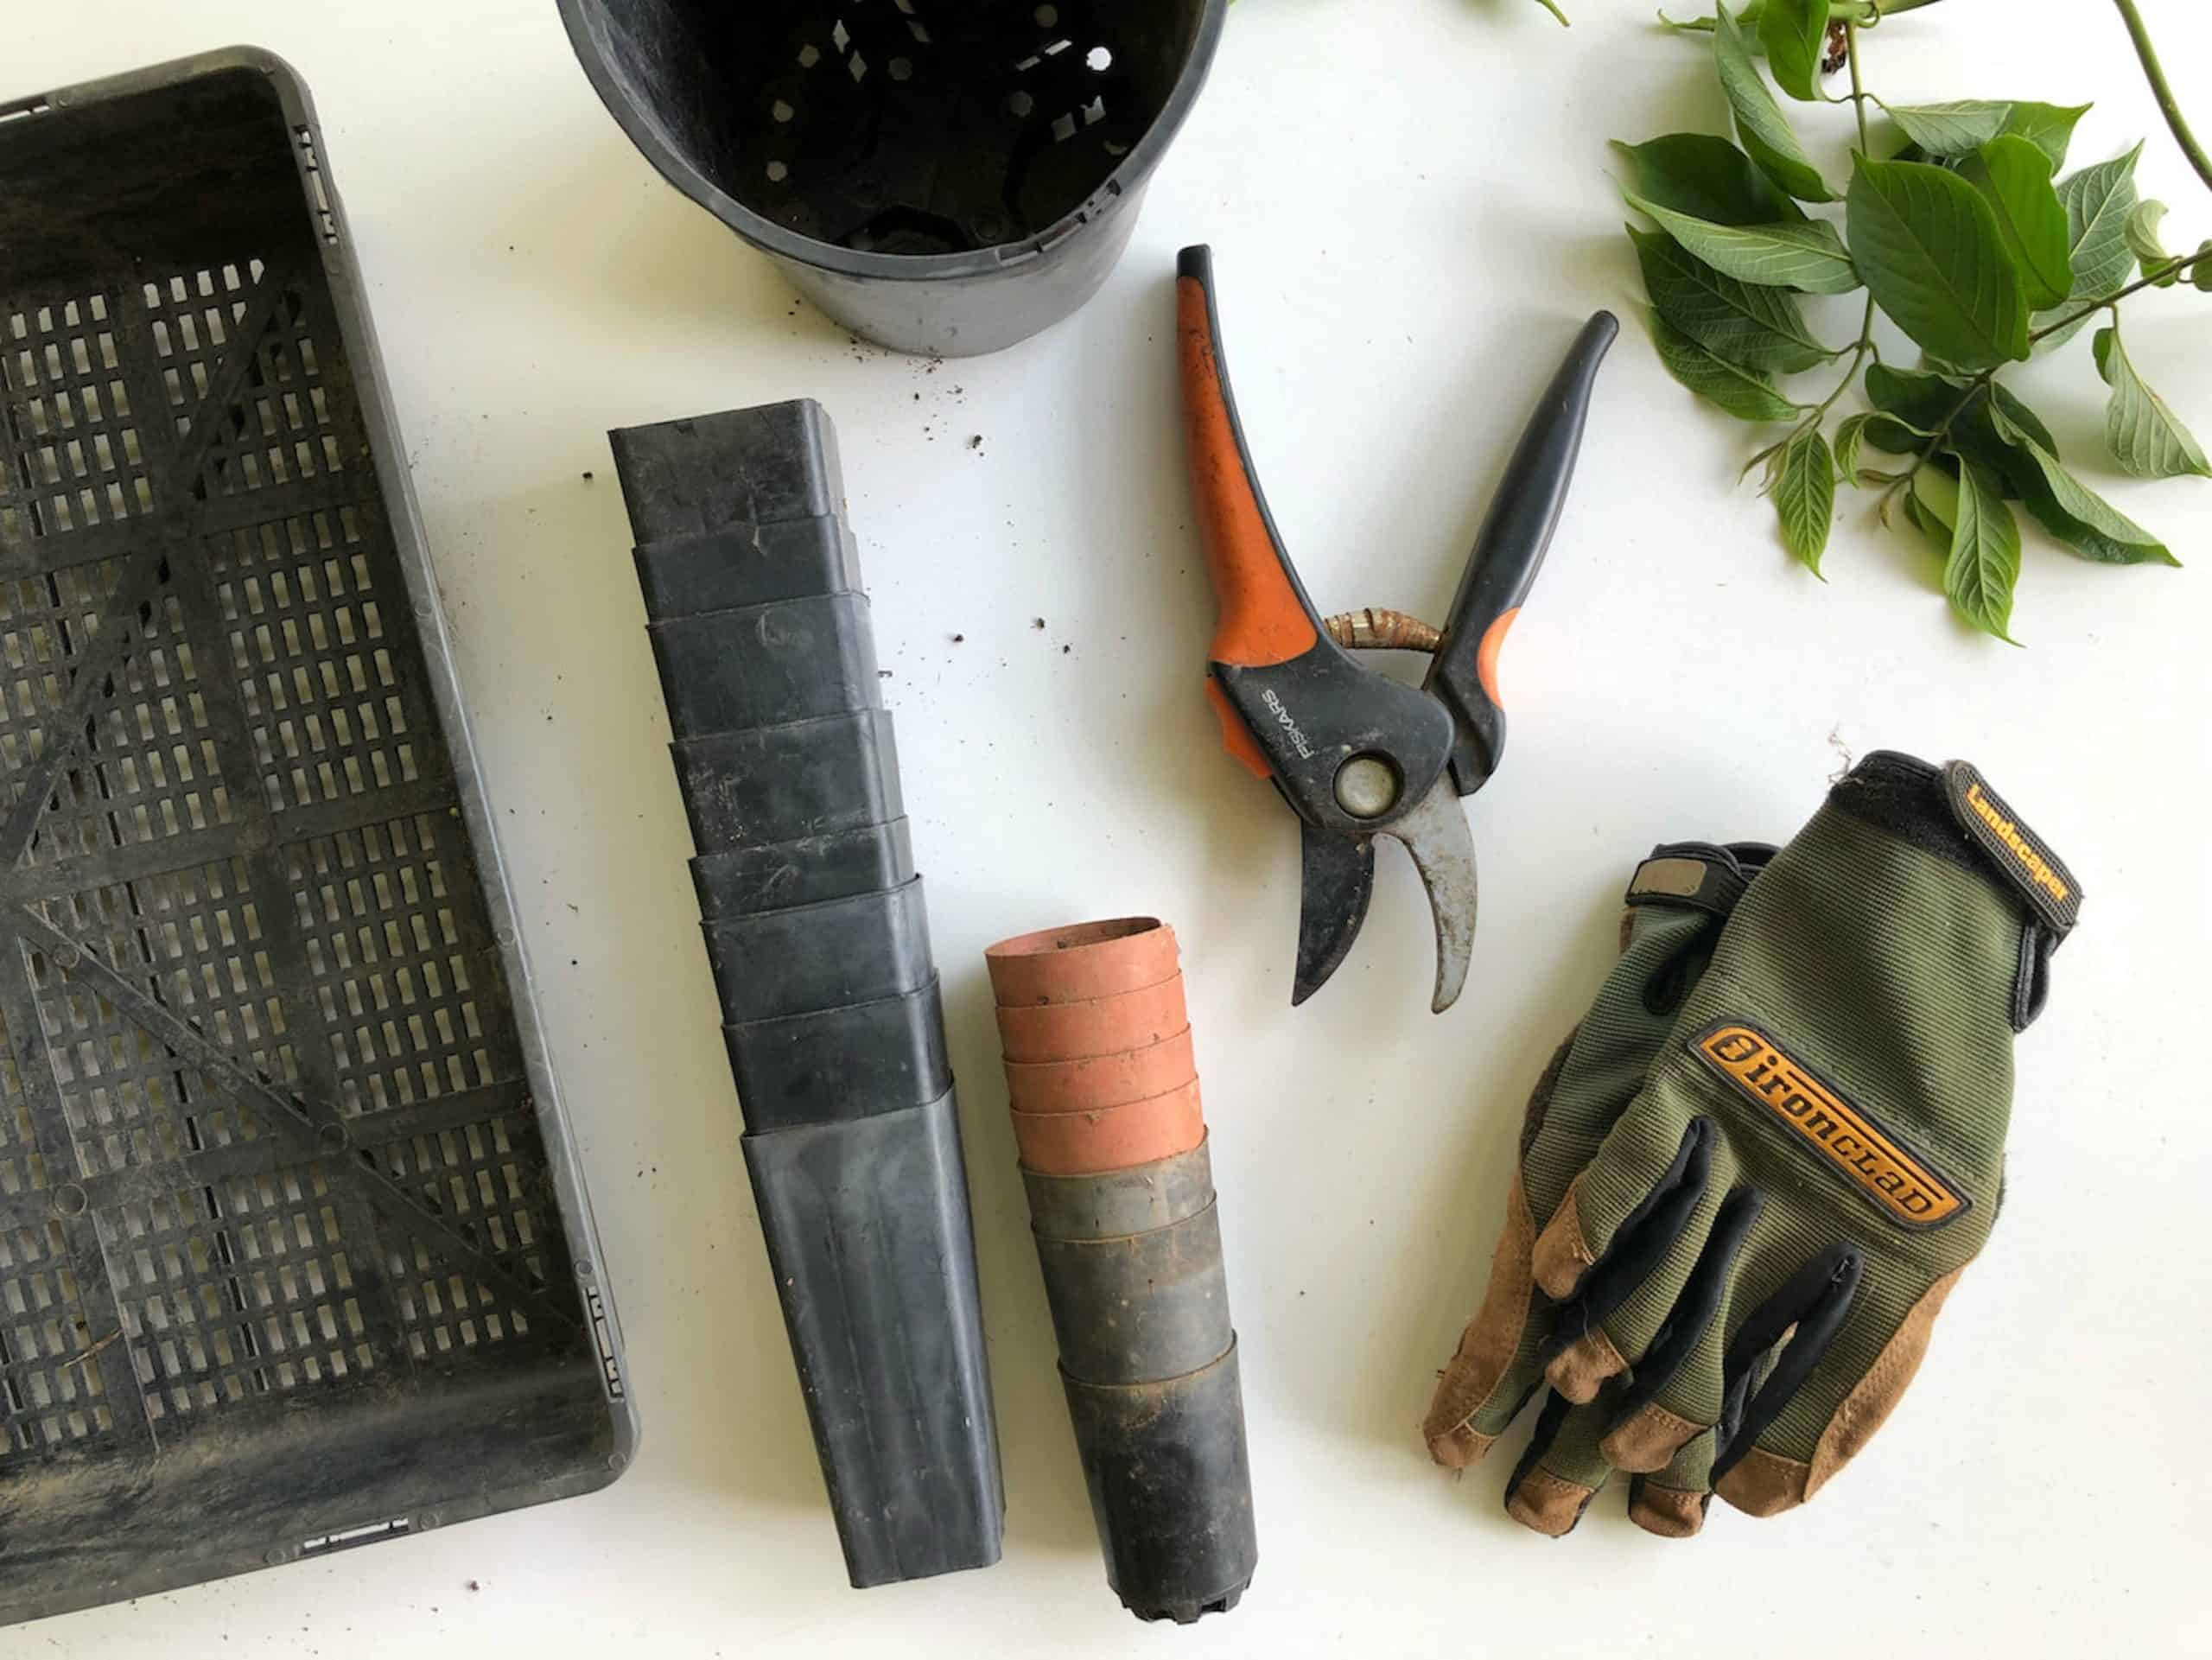 The Must-Have Gardening Tools For A Home Gardener